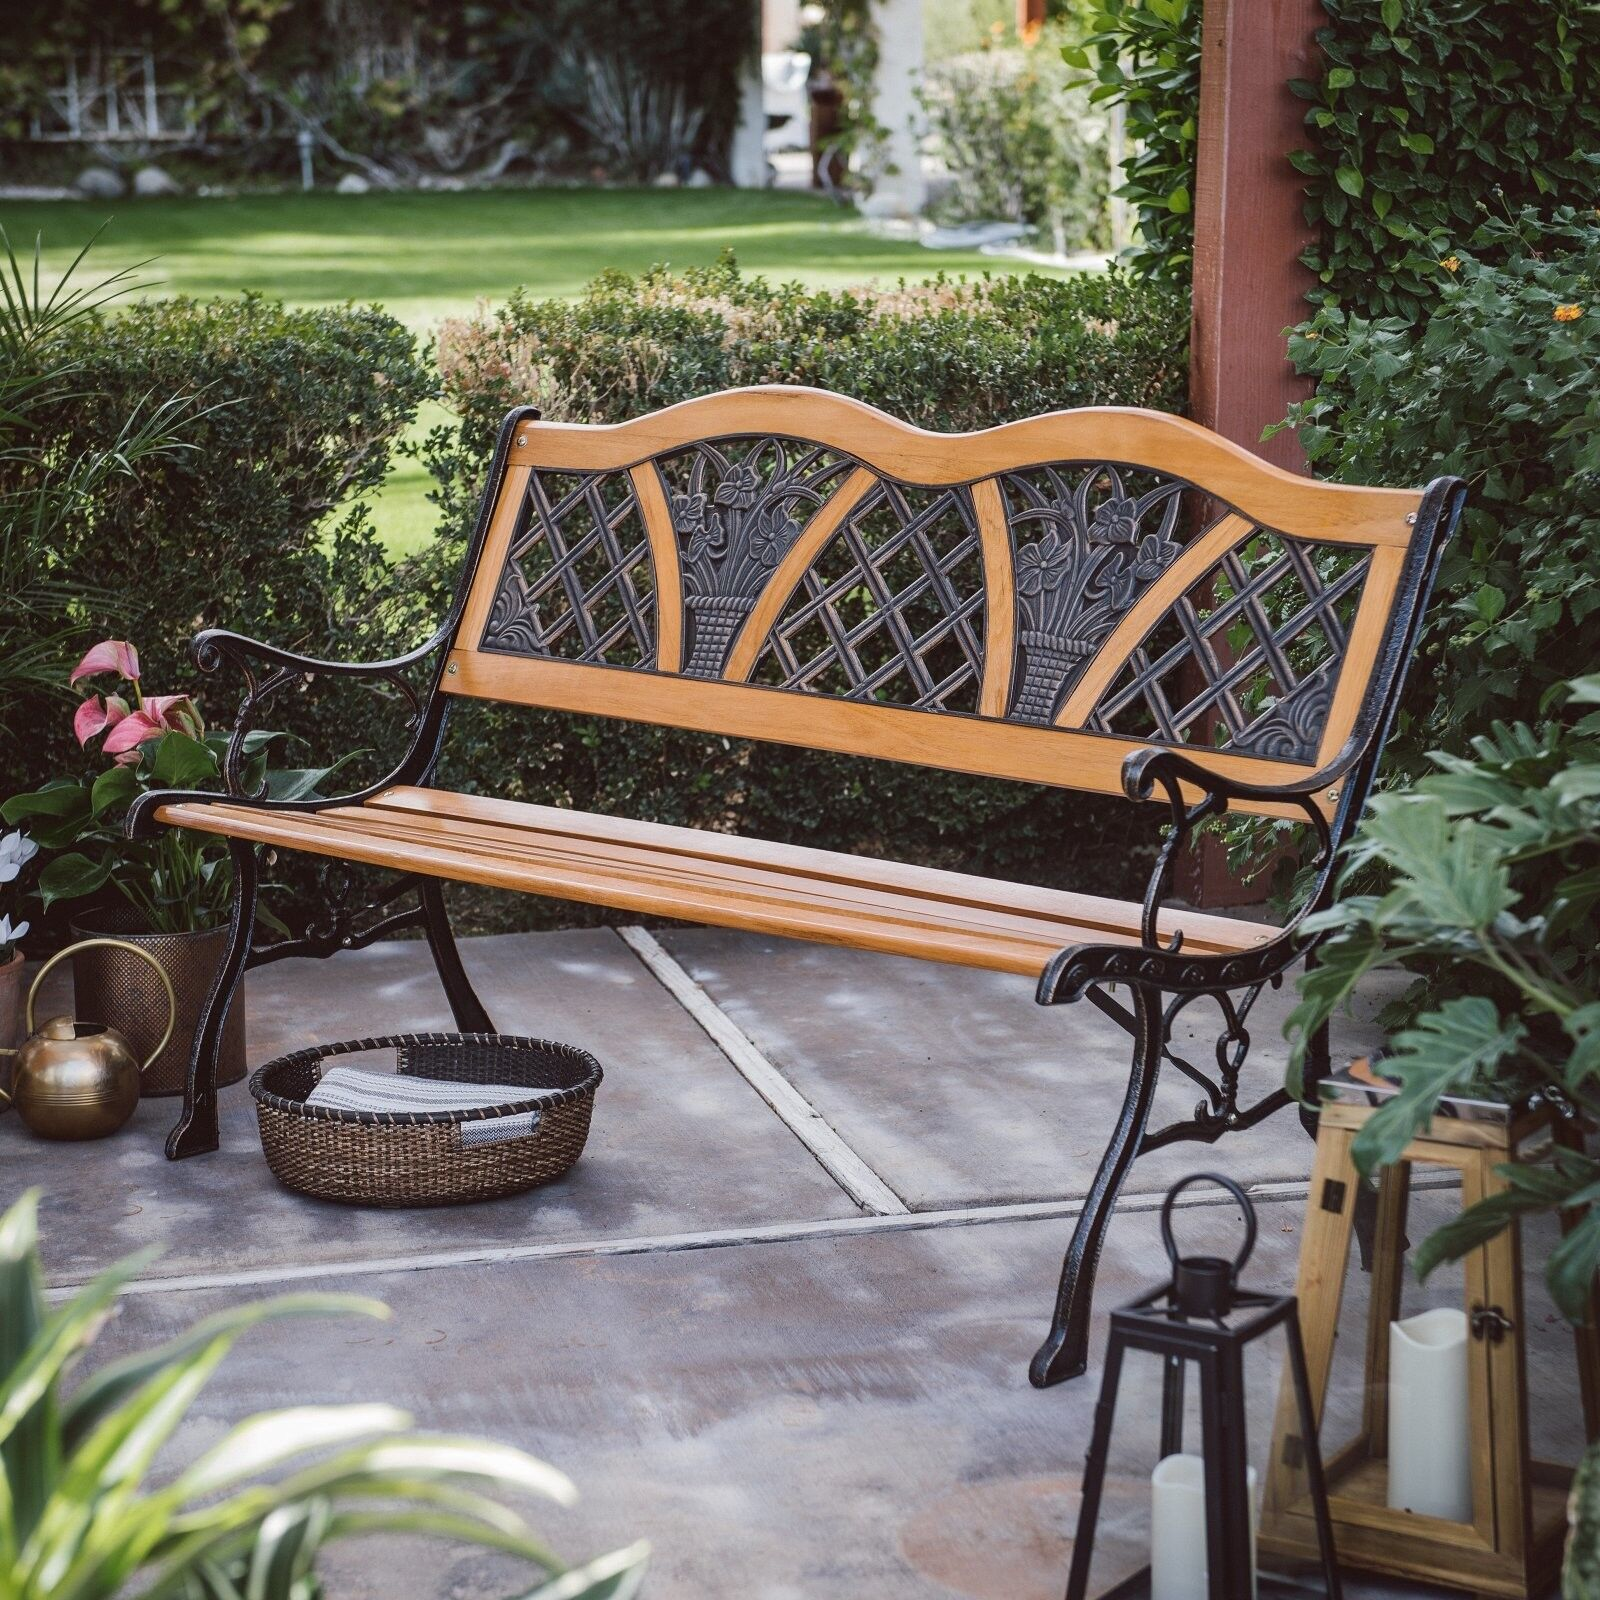 Details About Wooden Metal Double Garden Bench Antique Vintage Curve Back Outdoor Yard Patio